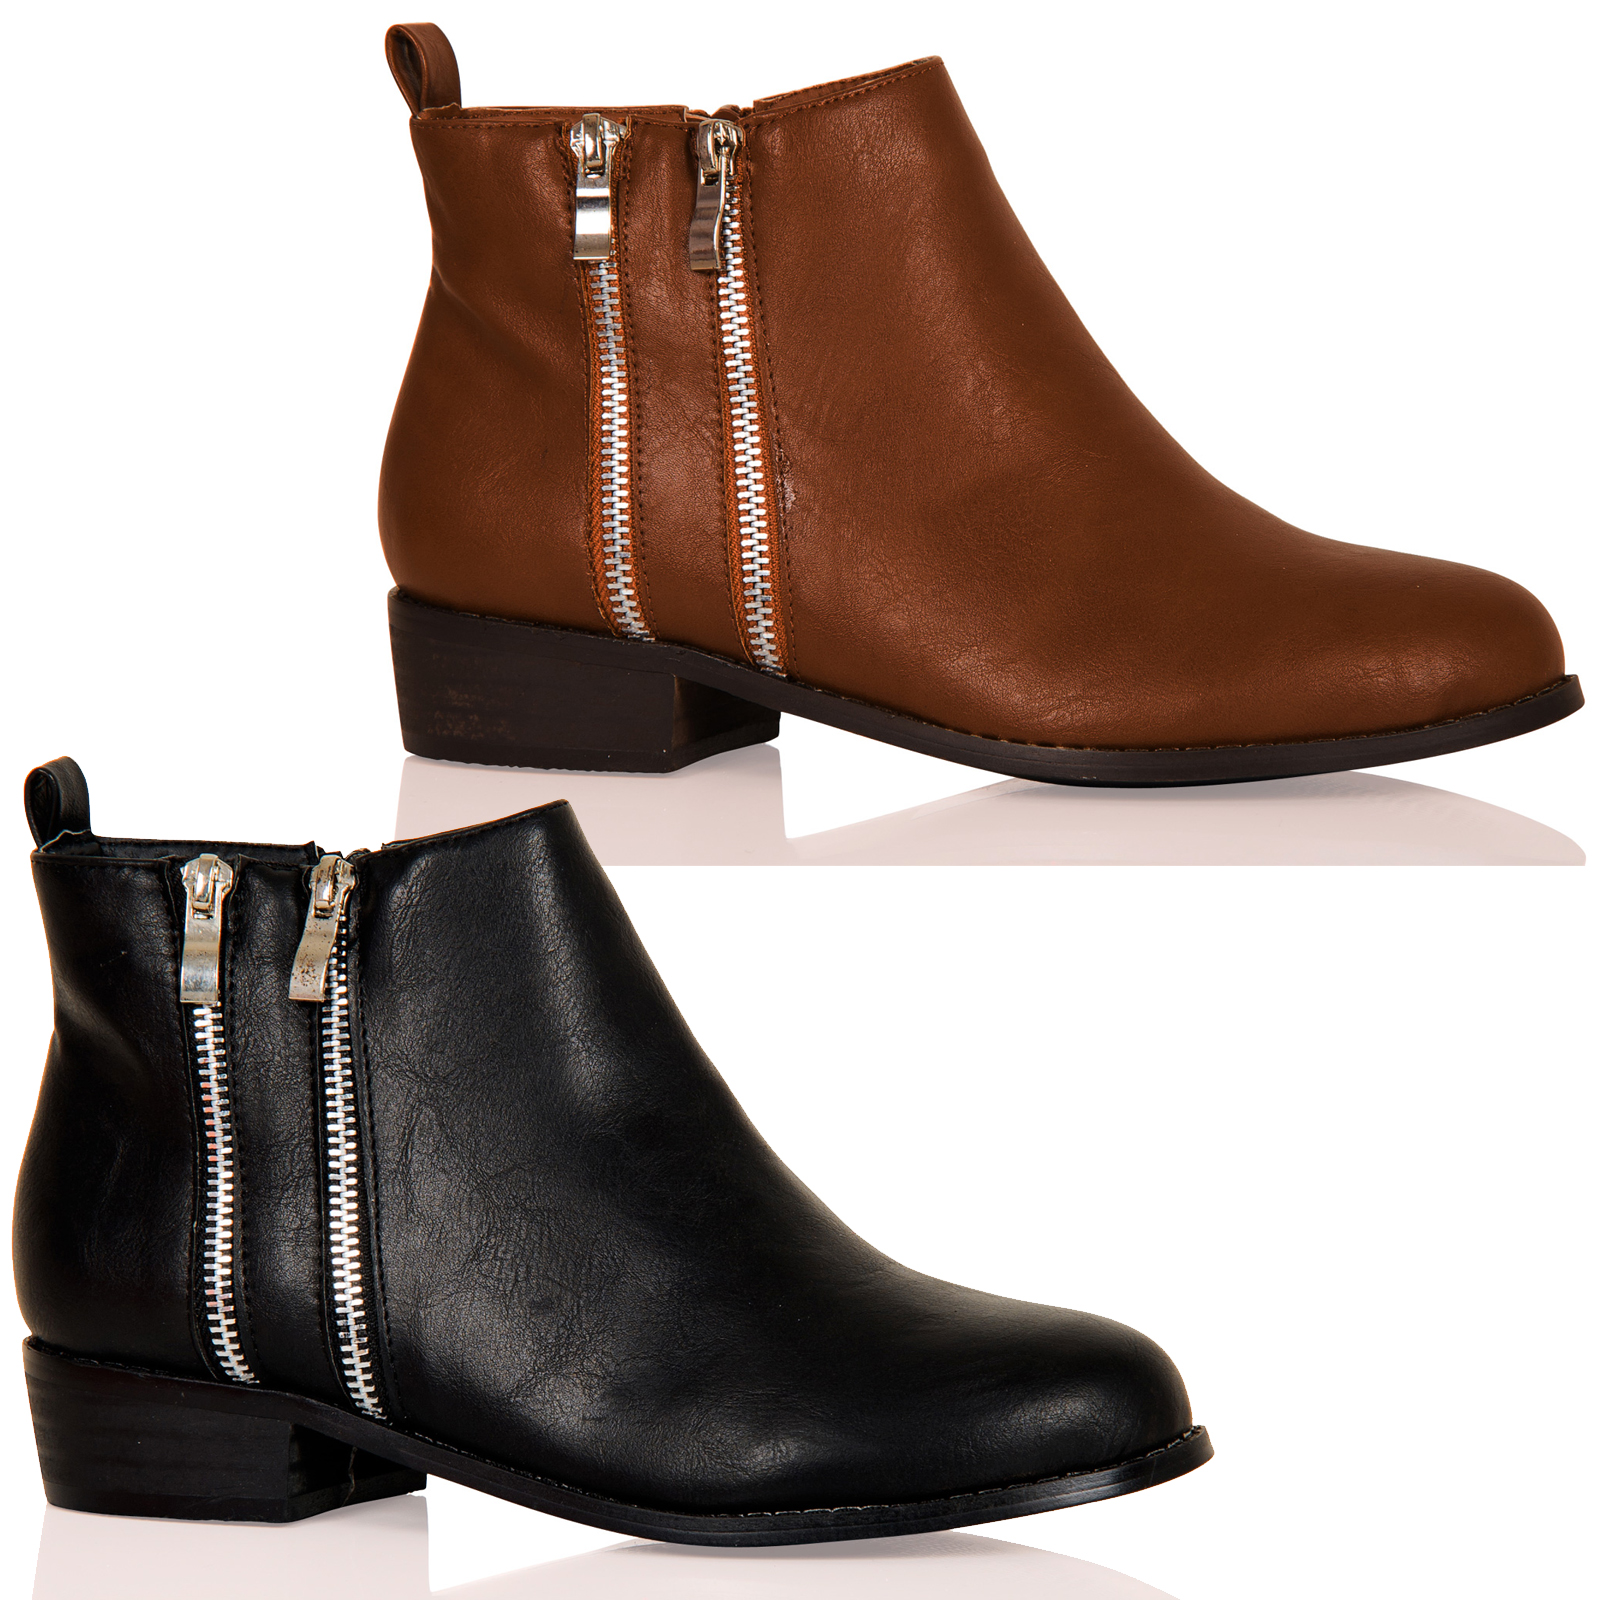 Shop Target for Ankle Boots you will love at great low prices. Spend $35+ or use your REDcard & get free 2-day shipping on most items or same-day pick-up in store.